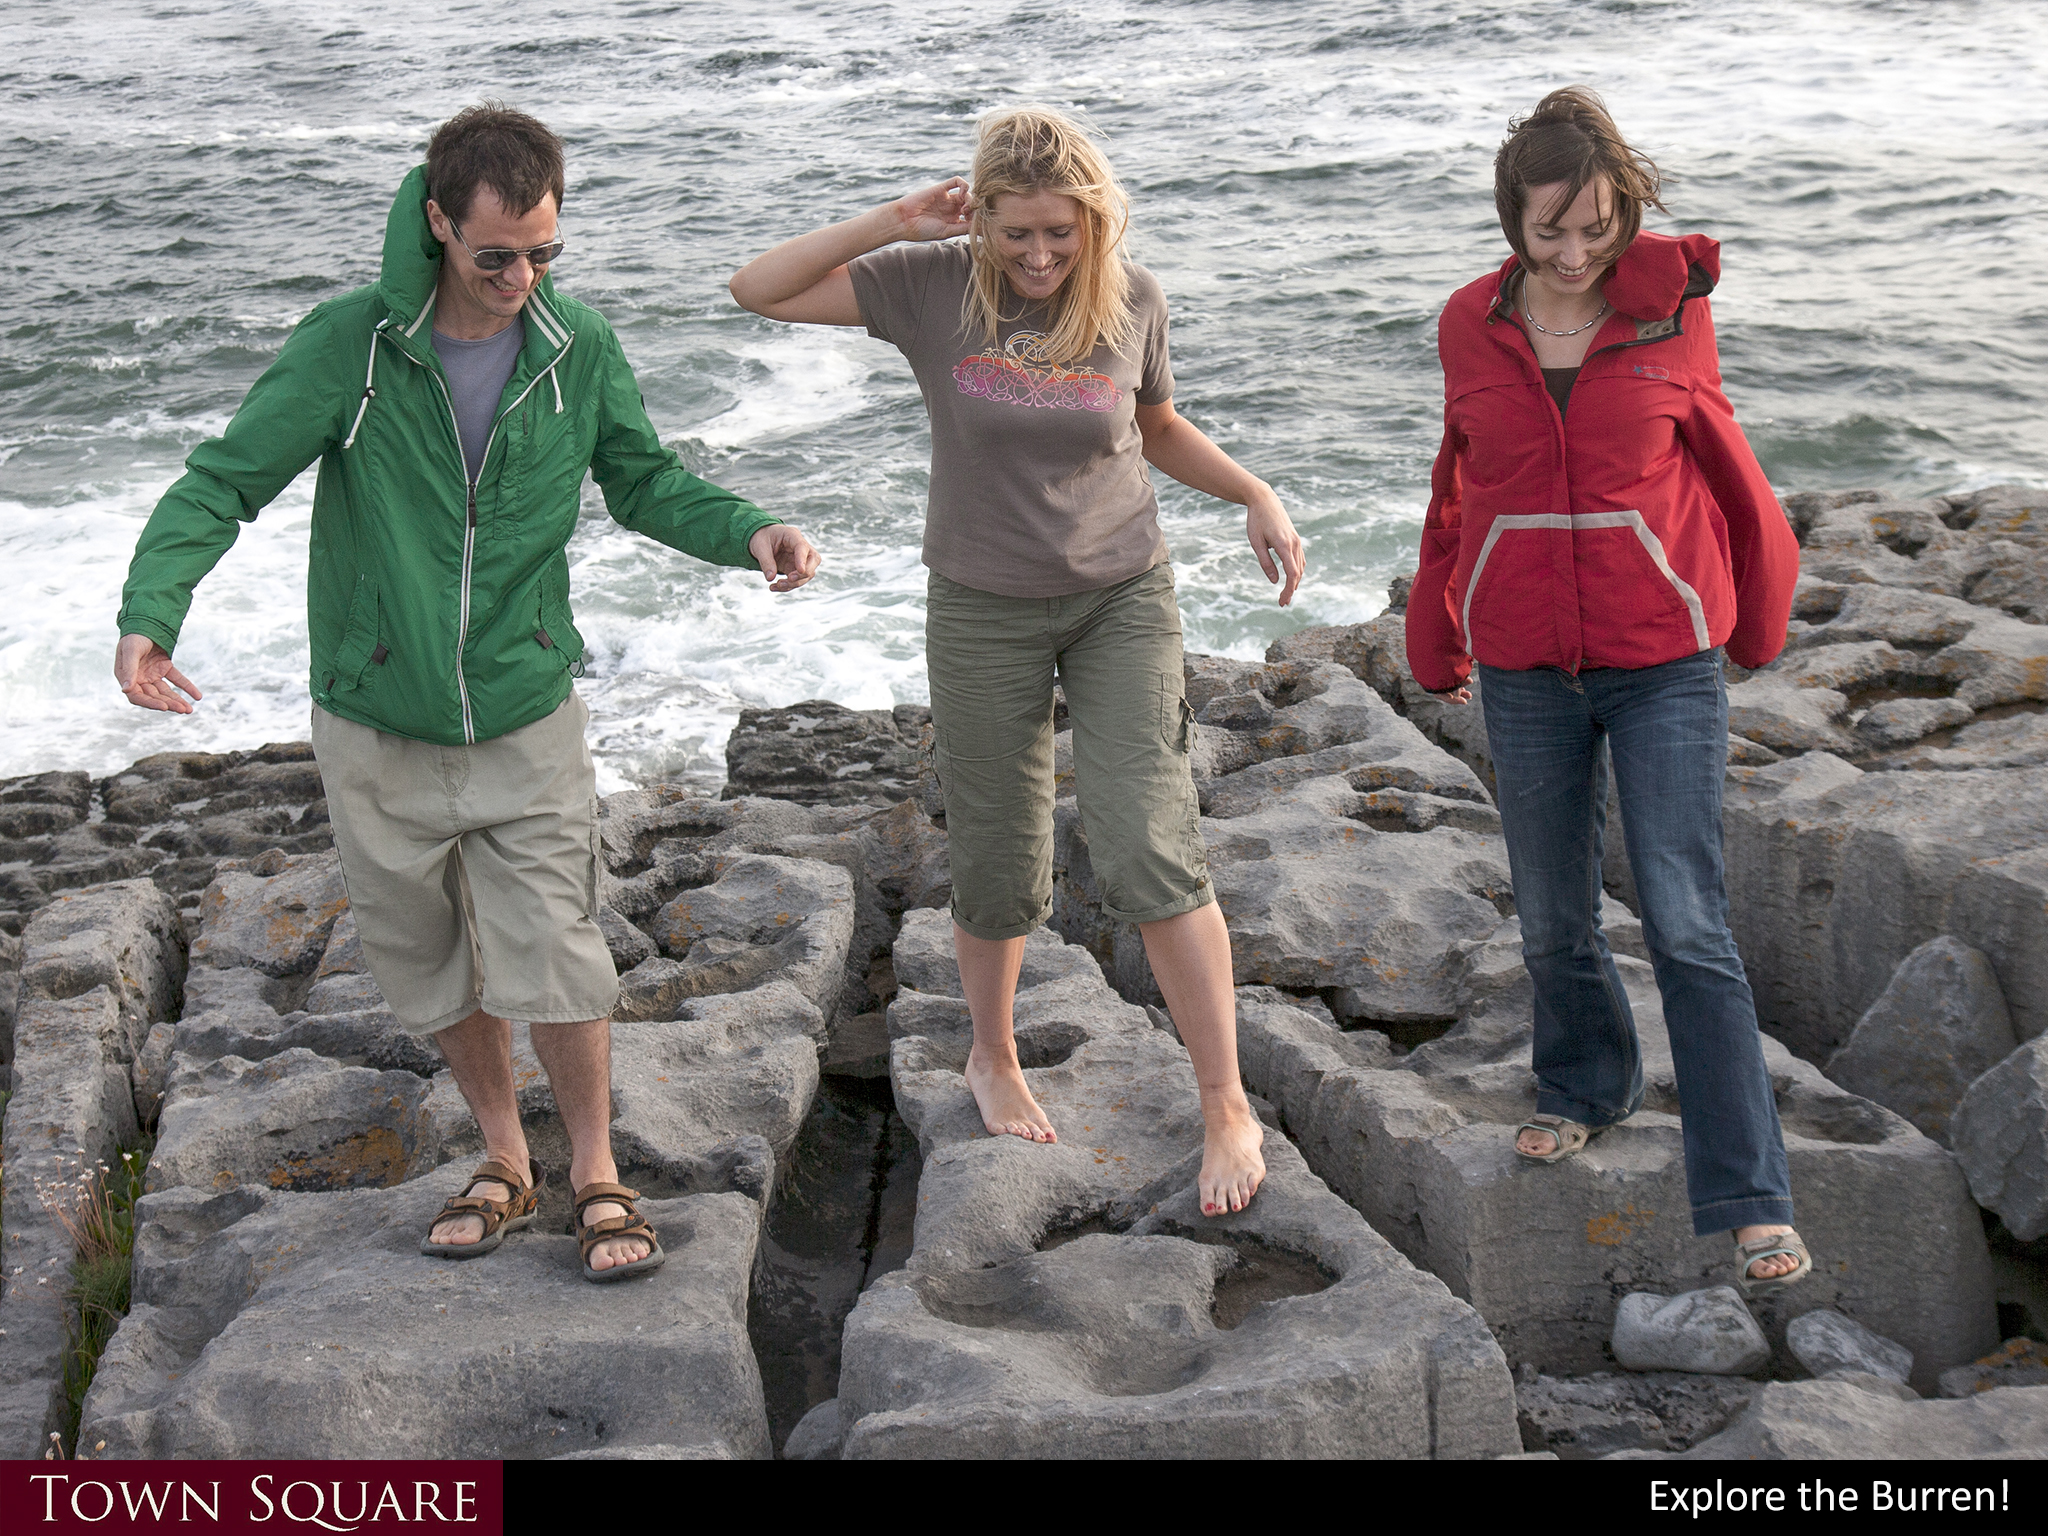 Explore the Burren limestone rocks!